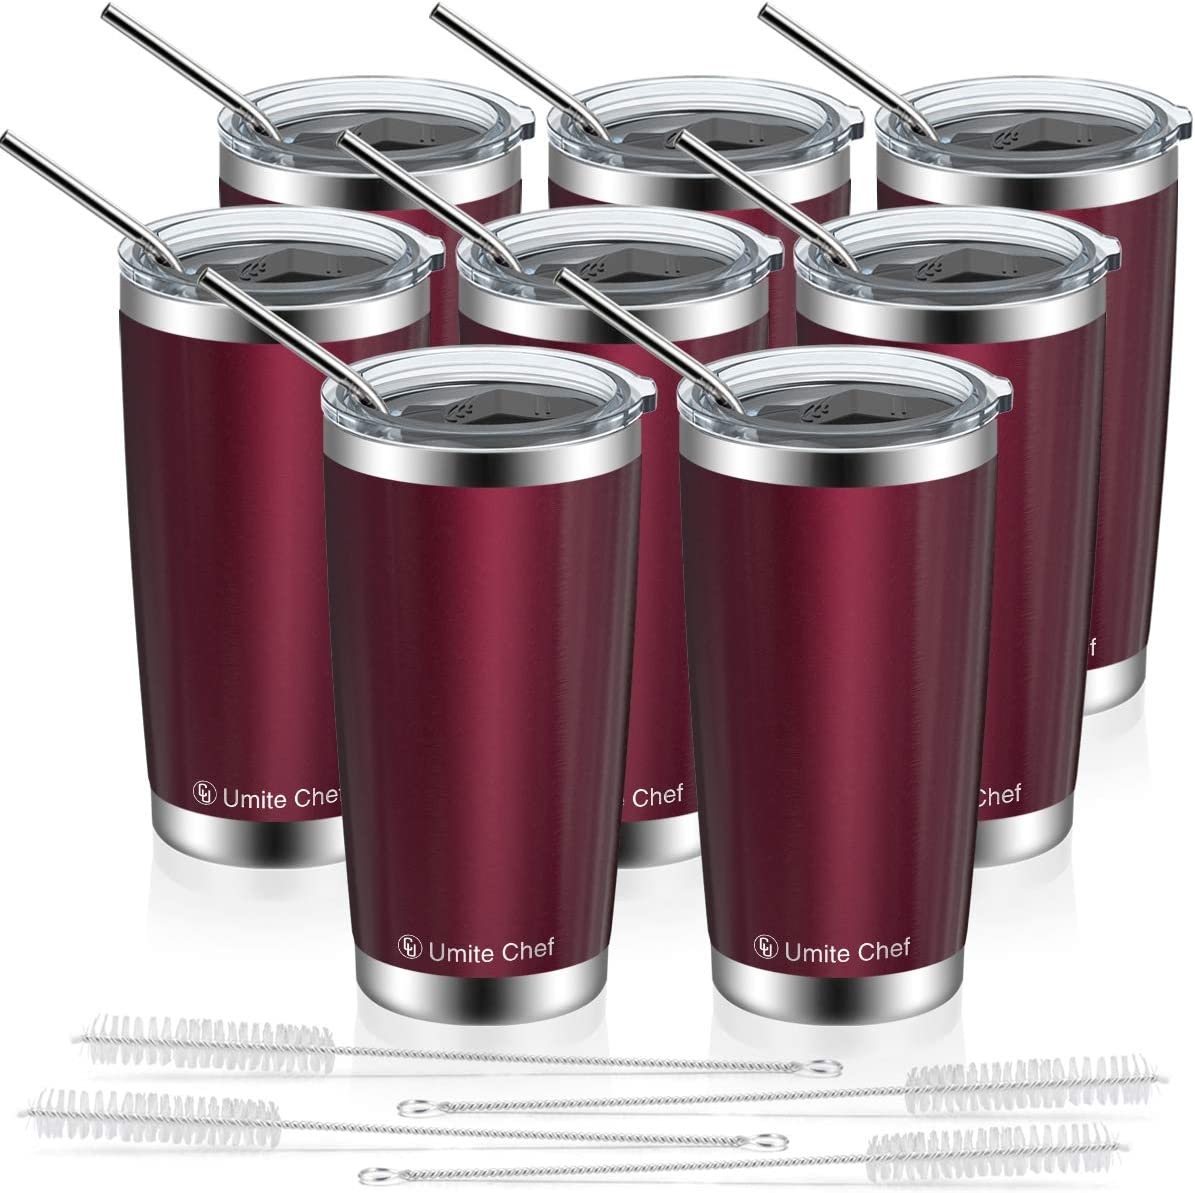 20oz Tumbler with Lid and Straw, Umite Chef Stainless Steel Vacuum Insulated Double Wall Travel Mug Tumbler Bulk, Insulated Coffee Mug for Outdoor, Office, Ice Drink, Hot Beverage (8 Pack, Wine Red)